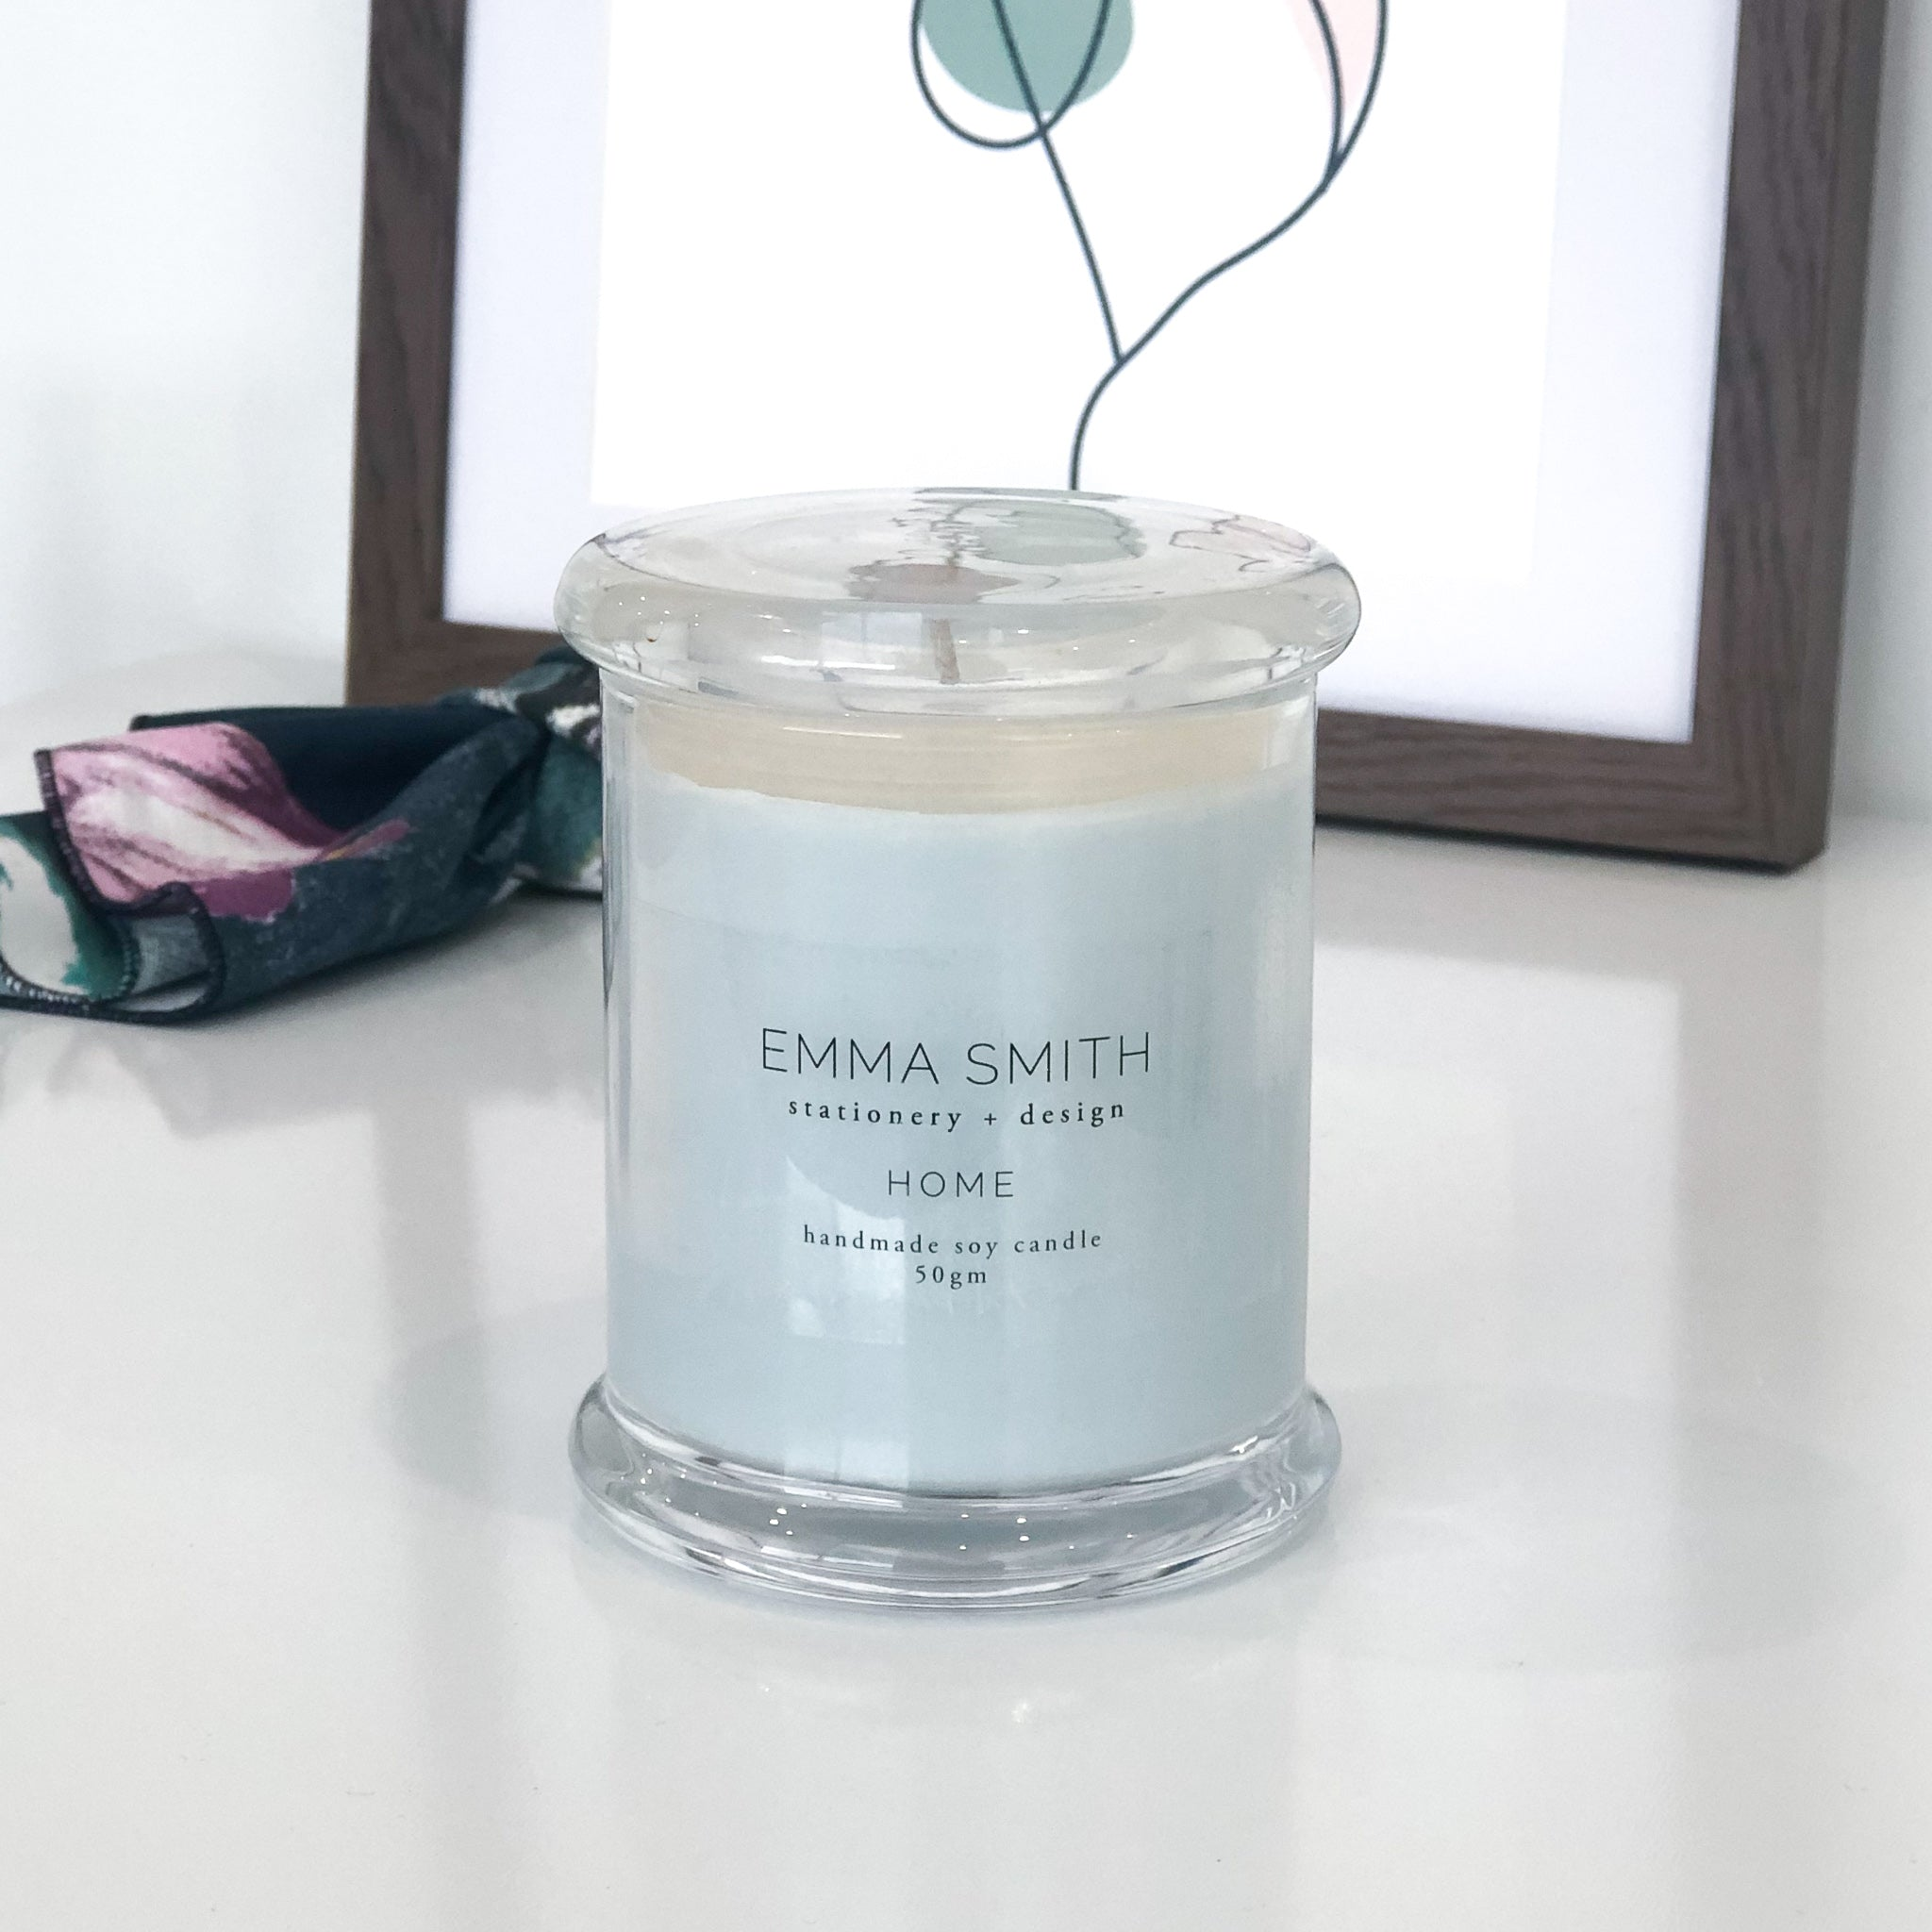 Soy Candles Handmade | Emma Smith Stationery and Design